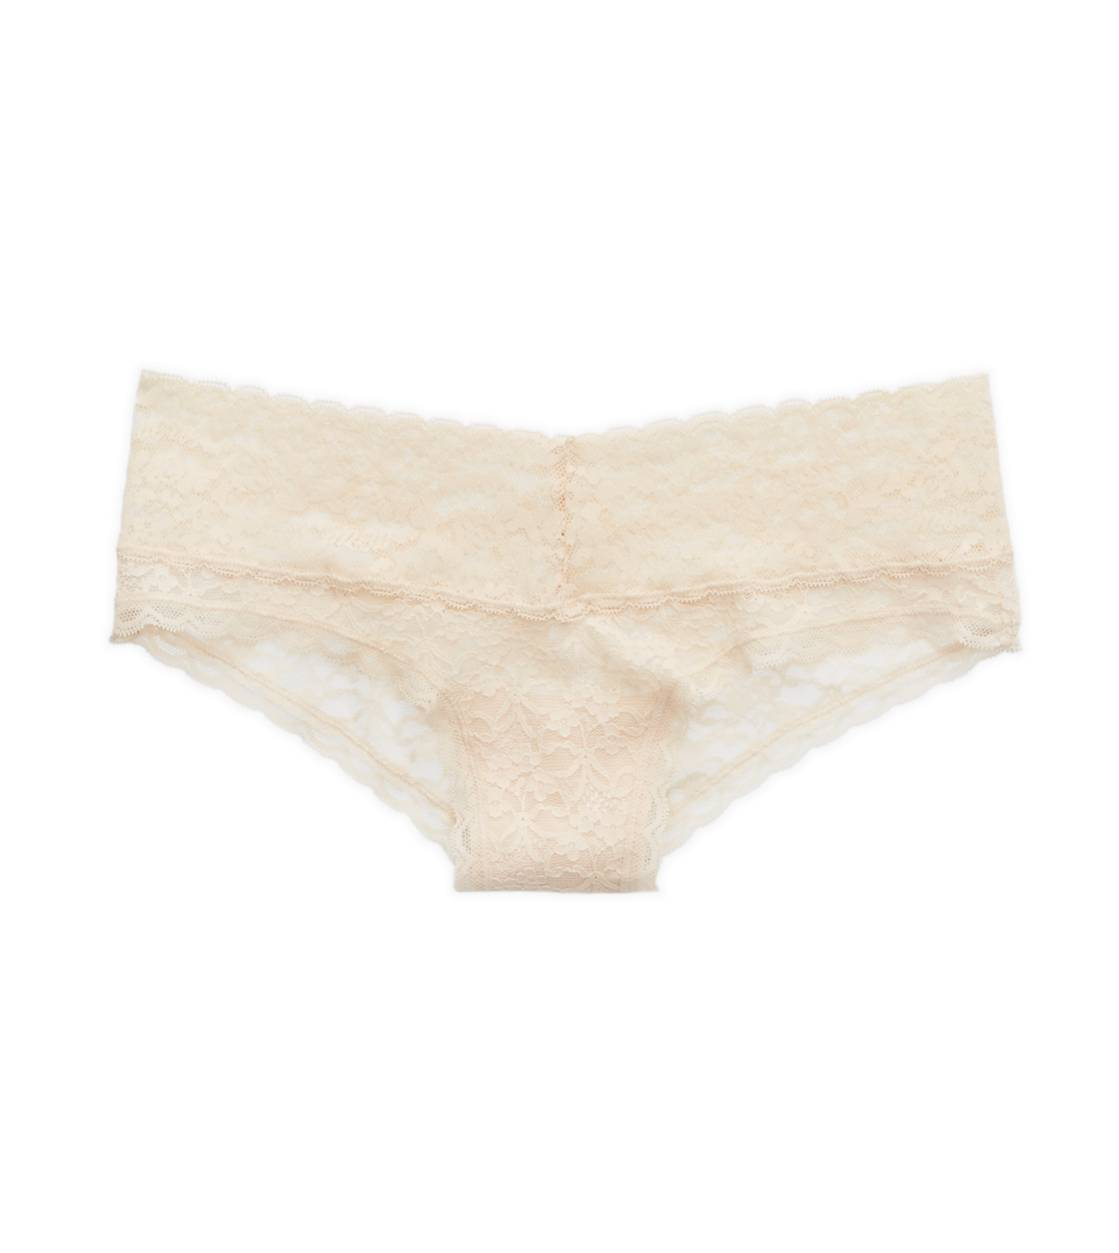 Buff Aerie Vintage Lace Cheeky